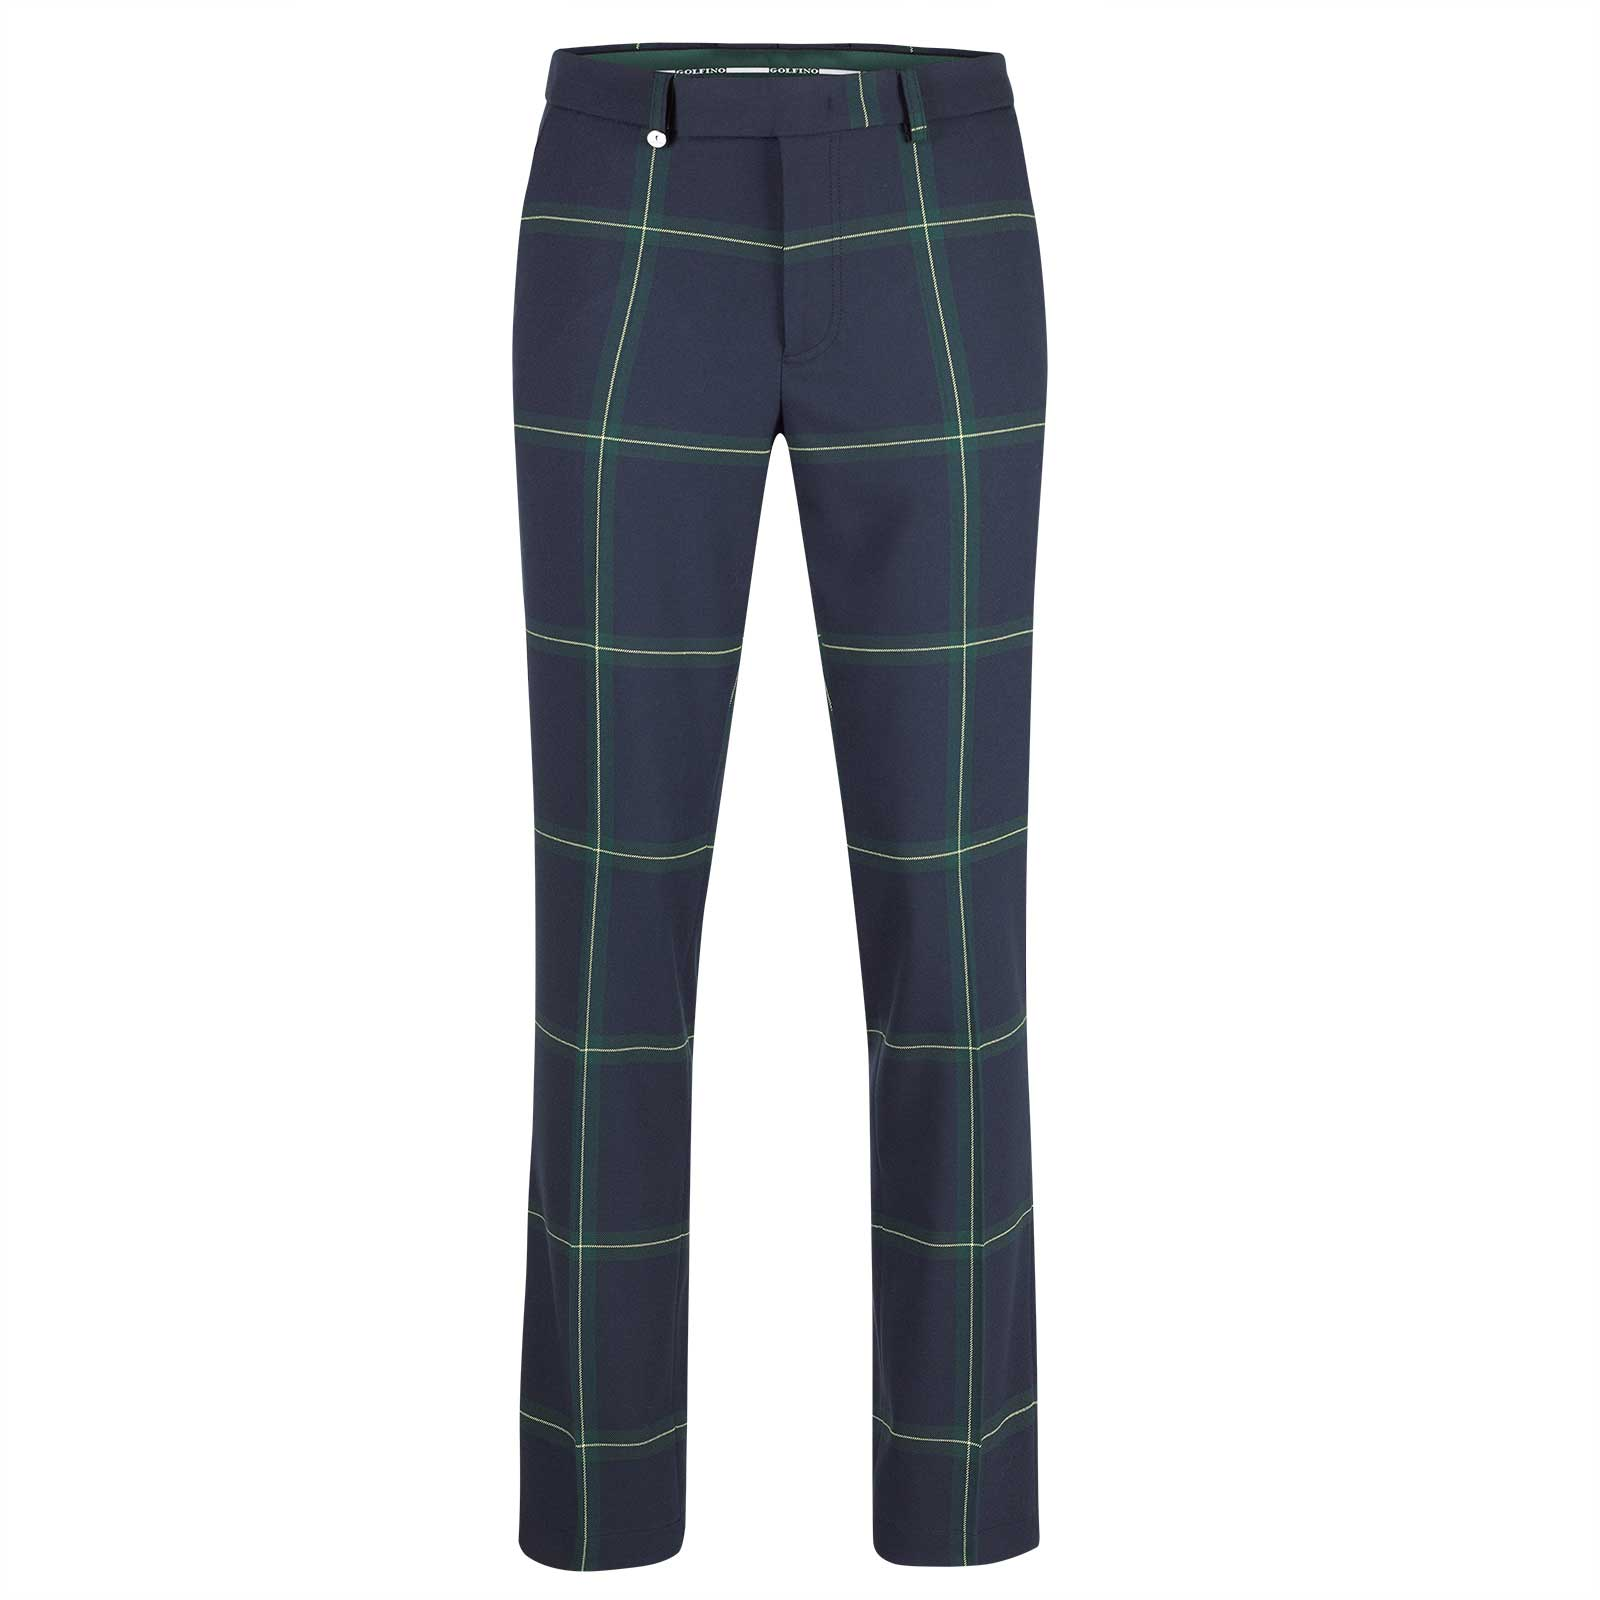 Men's stretch trousers with classic golf check and modern fit